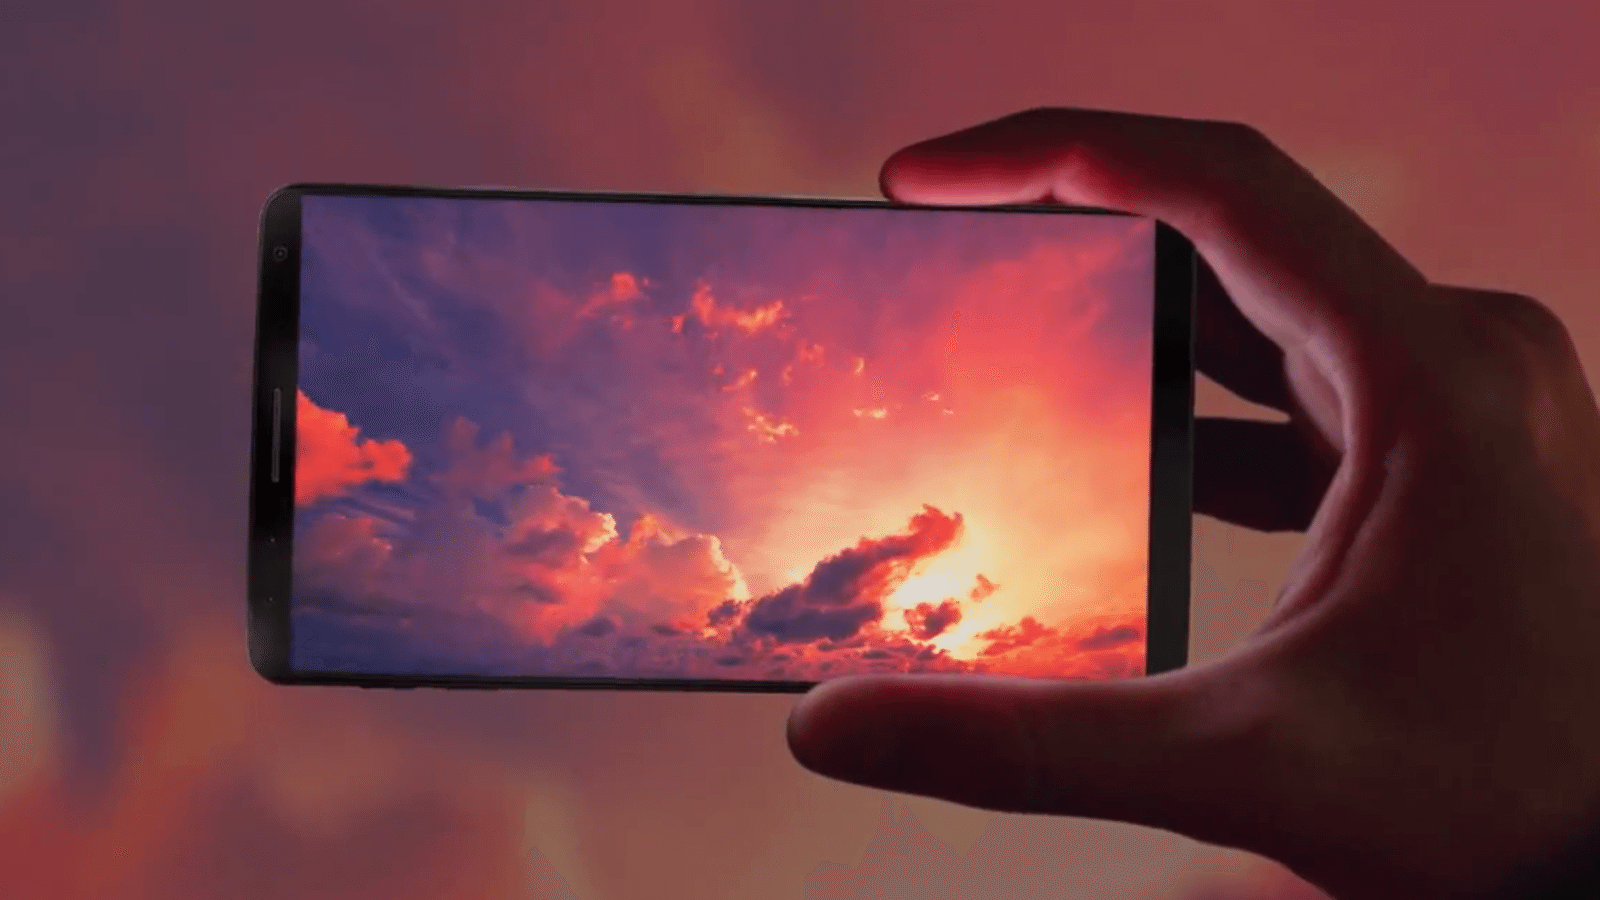 samsung amoled display ad galaxy s8 2